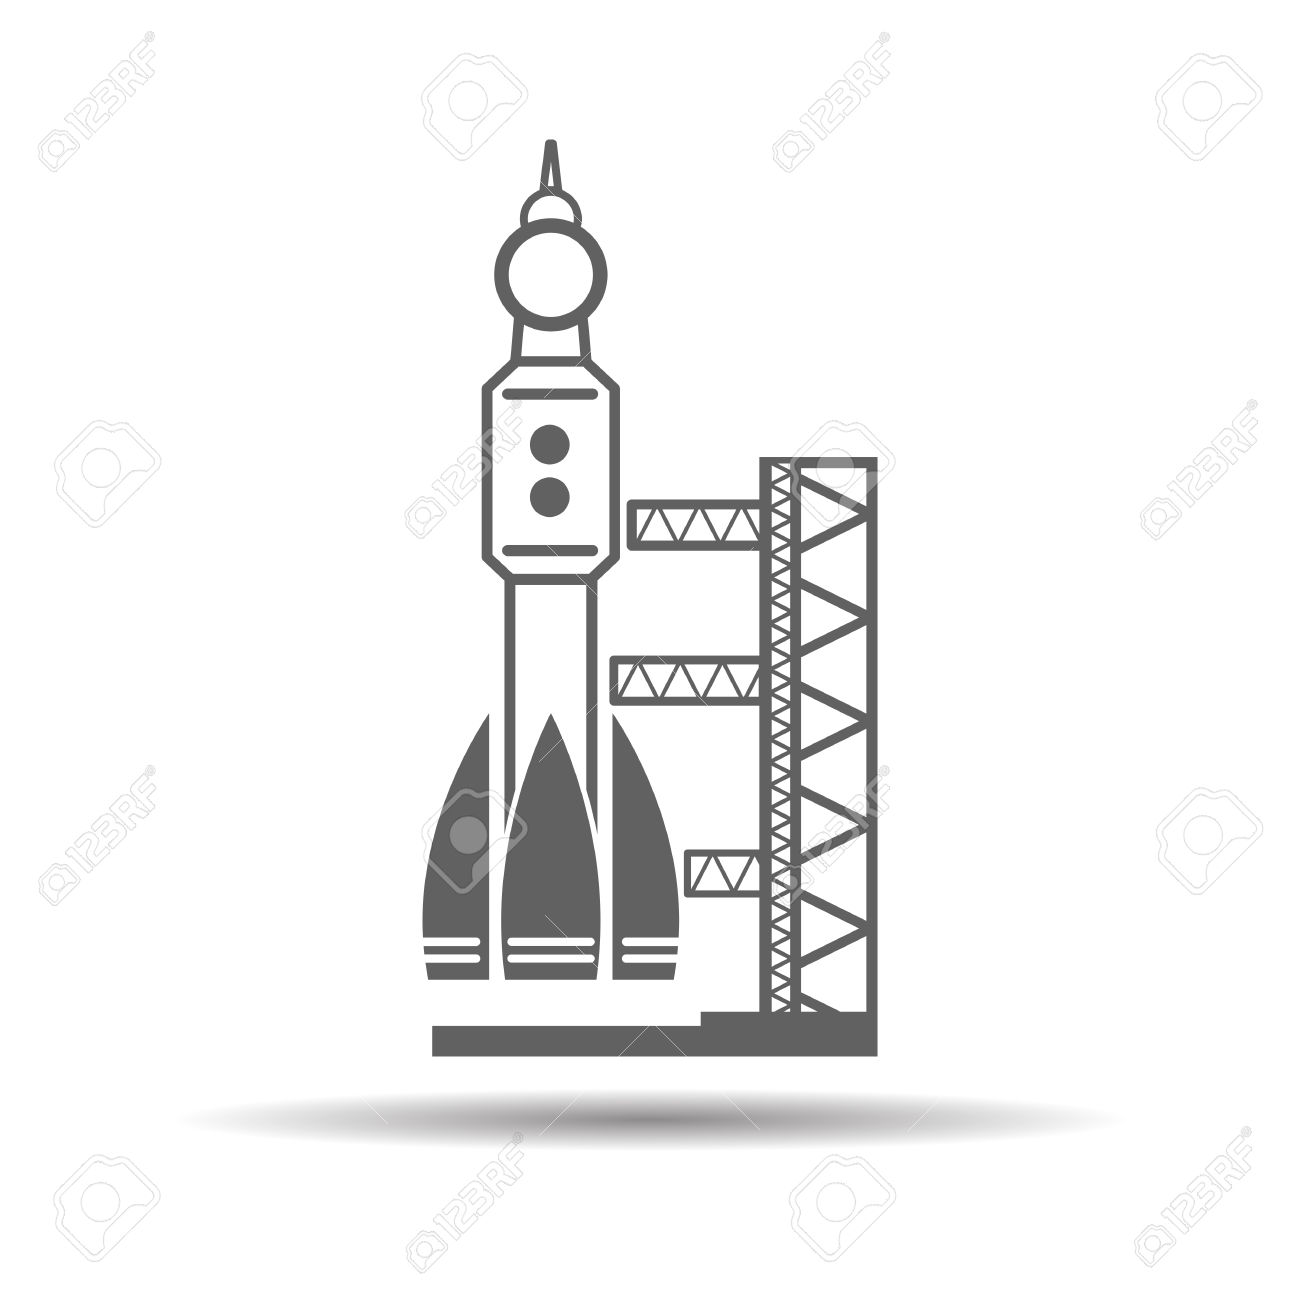 Black Launch Site With Rocket, Spaceport Icon, Vector Illustration.